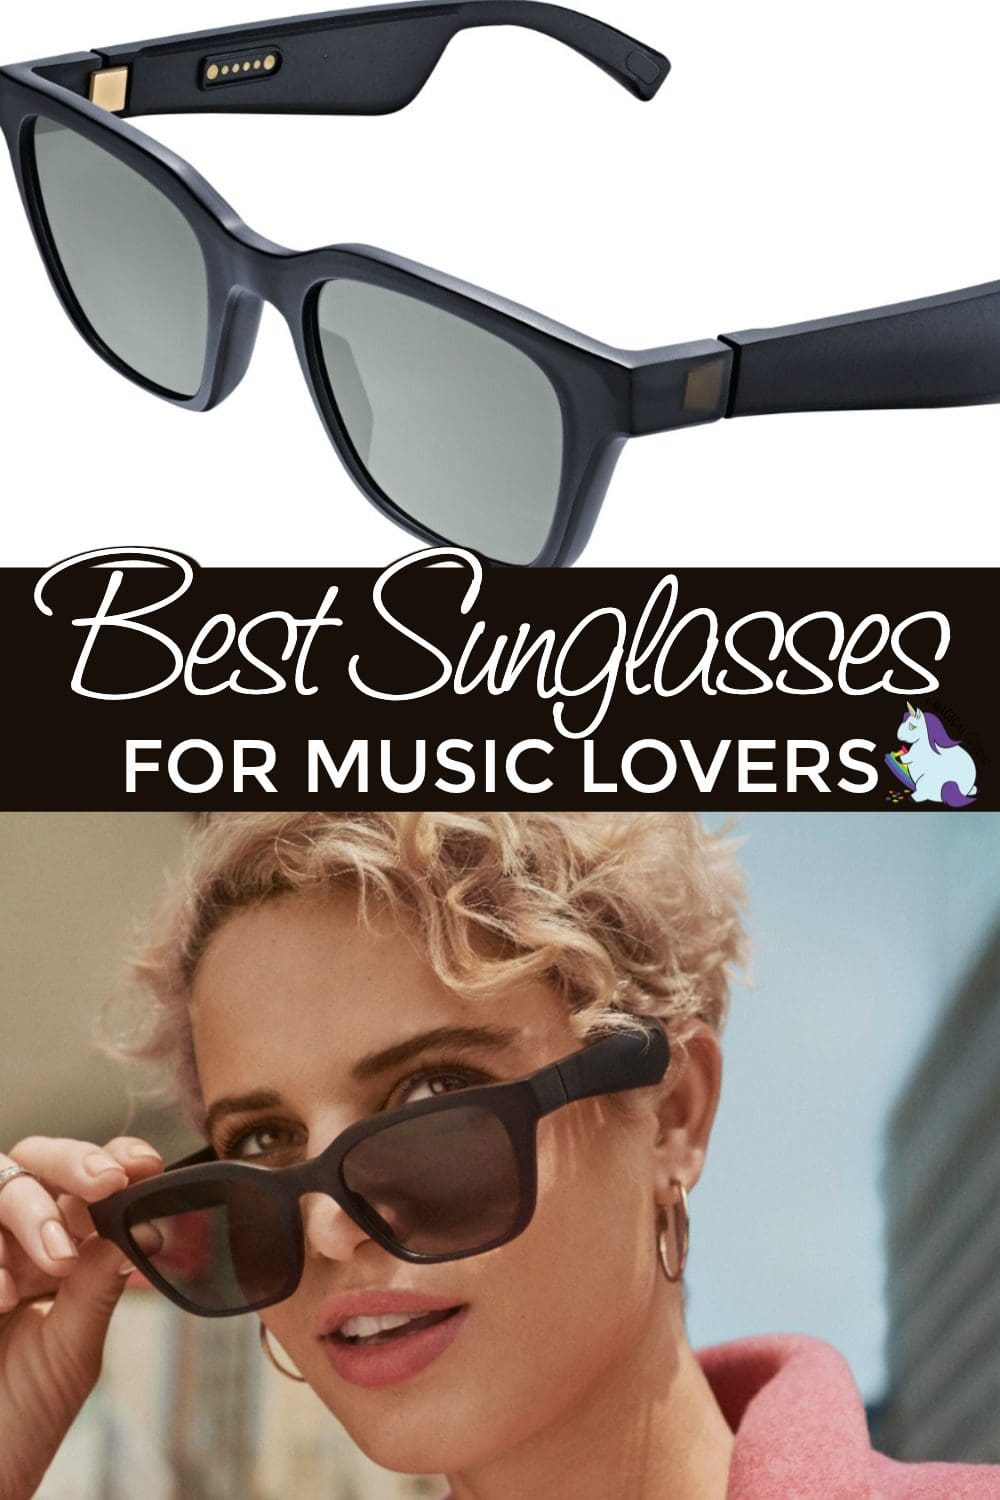 Bose Sunglasses and a person wearing them.